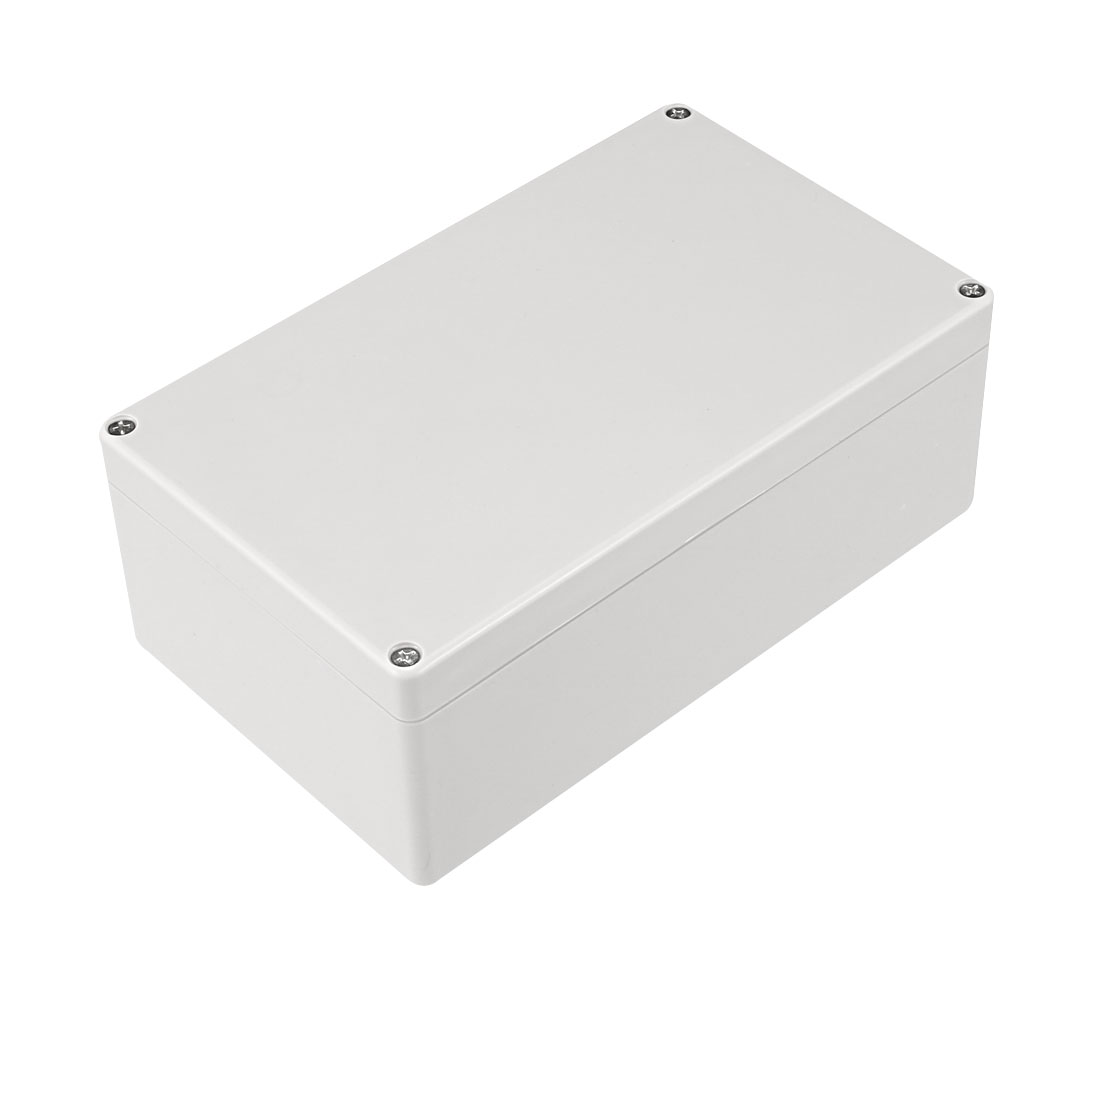 200 x 120 x 75mm Electronic ABS Plastic DIY Junction Box Enclosure Case Gray